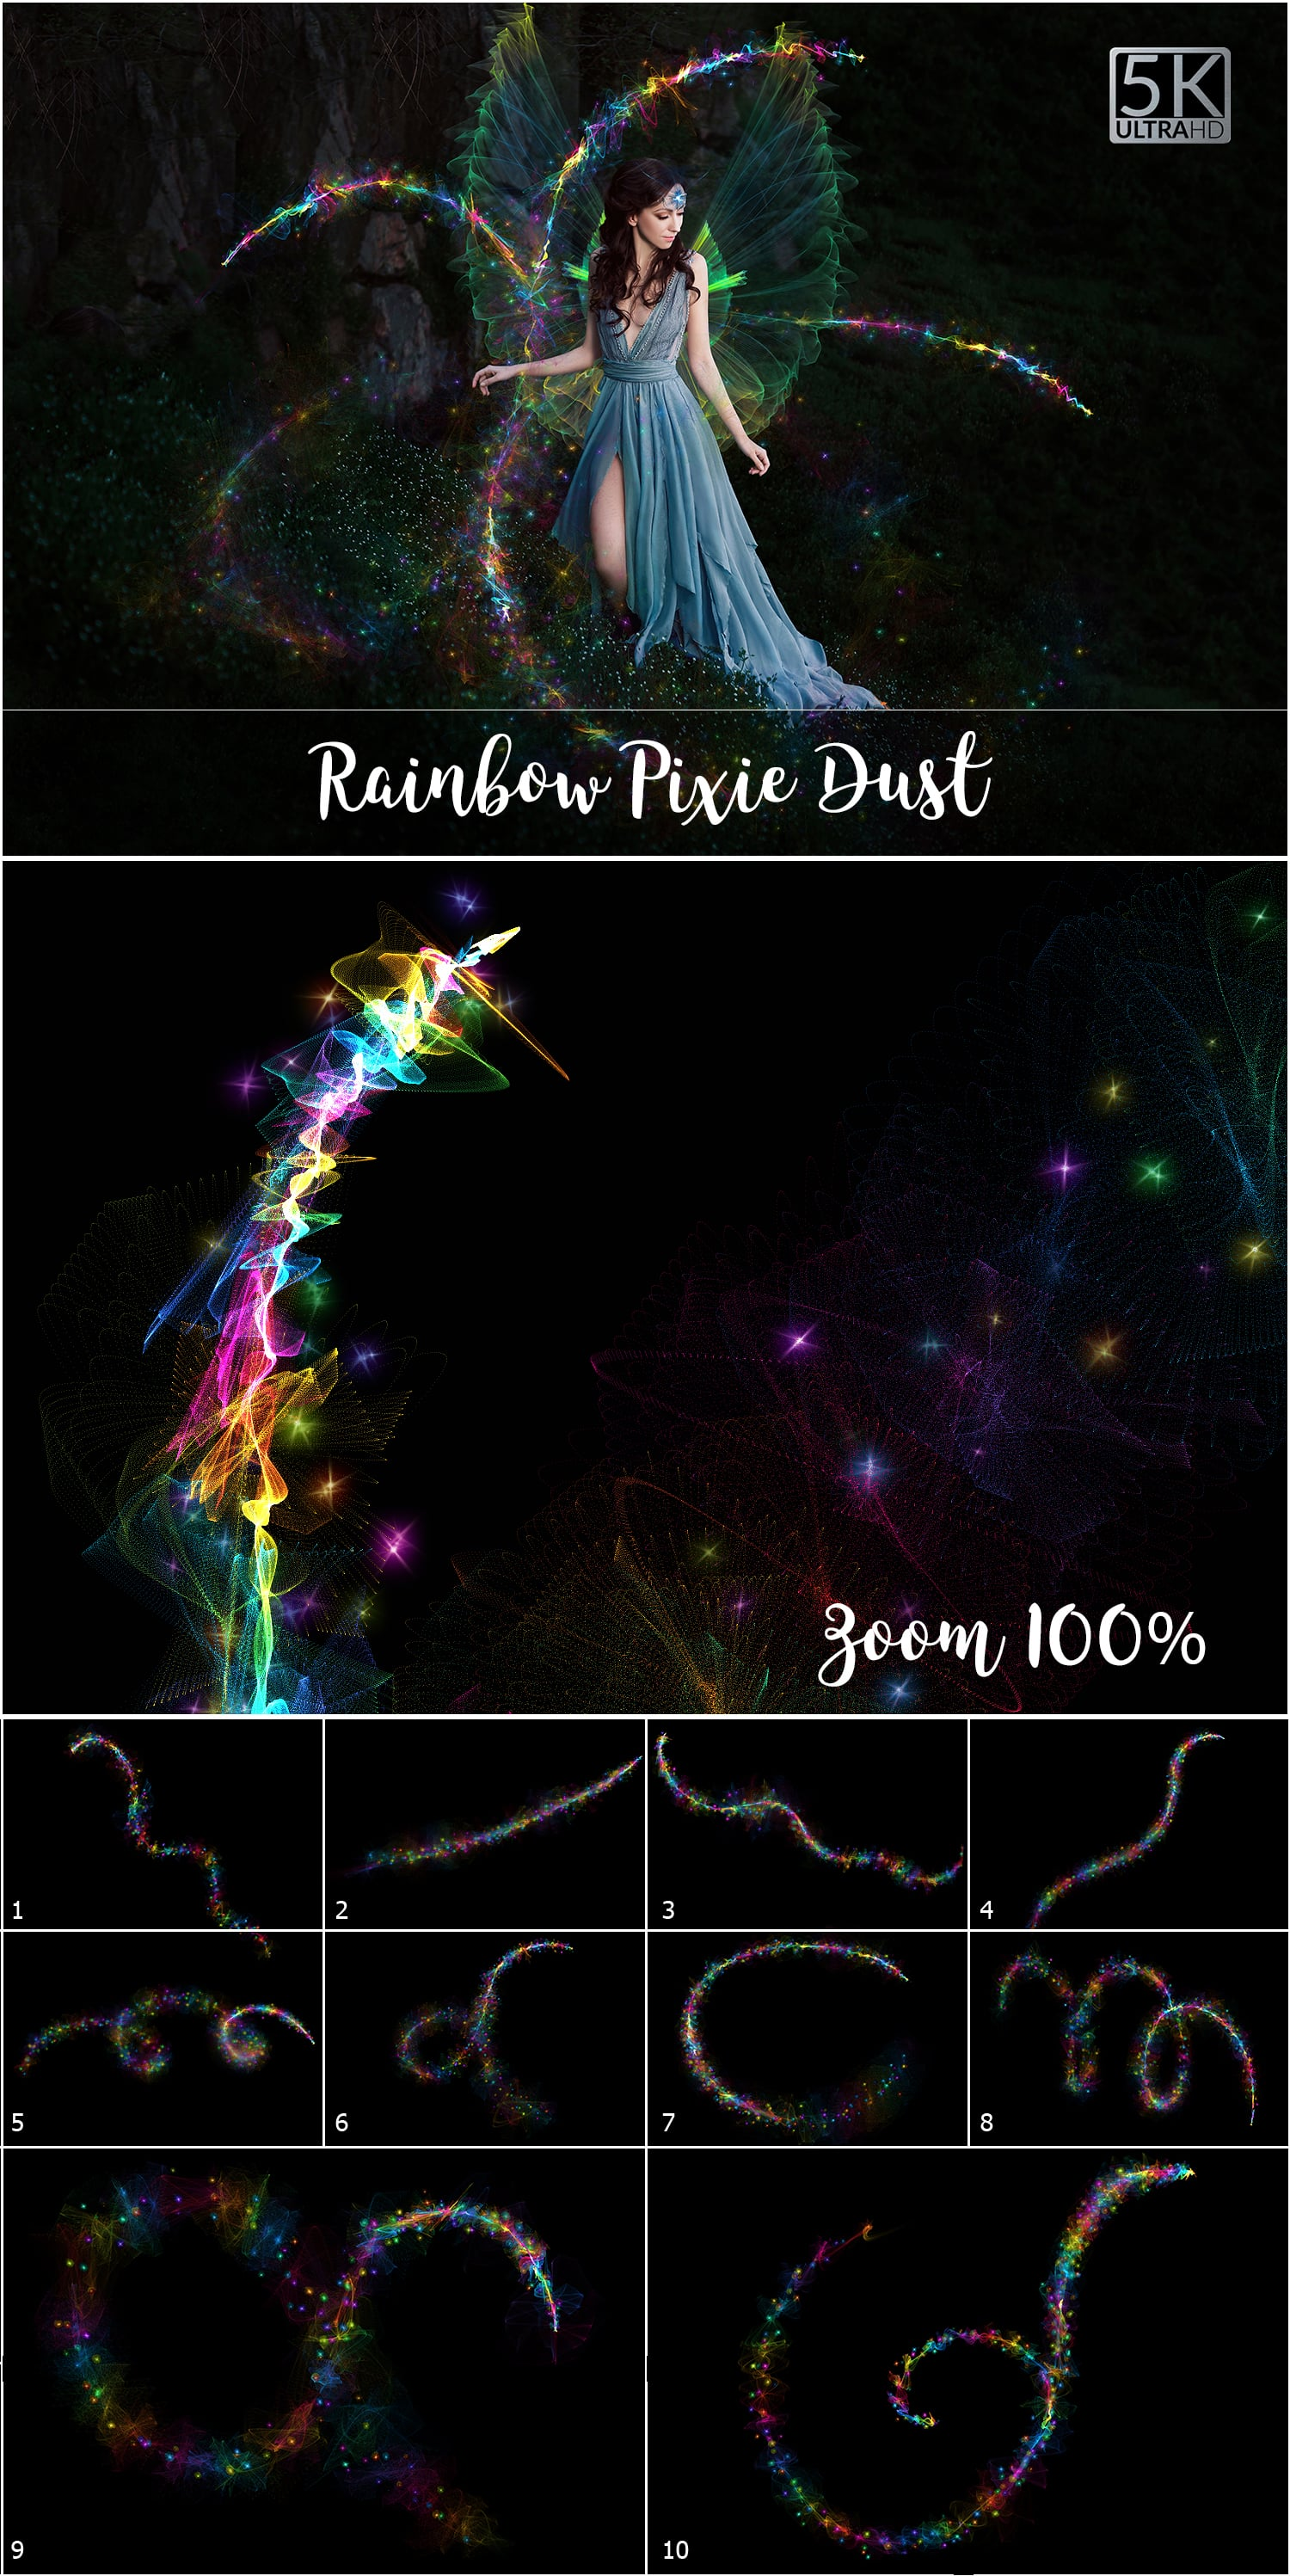 1053 Spectacular Overlays png - Only $18! - Rainbow Pixie Dust